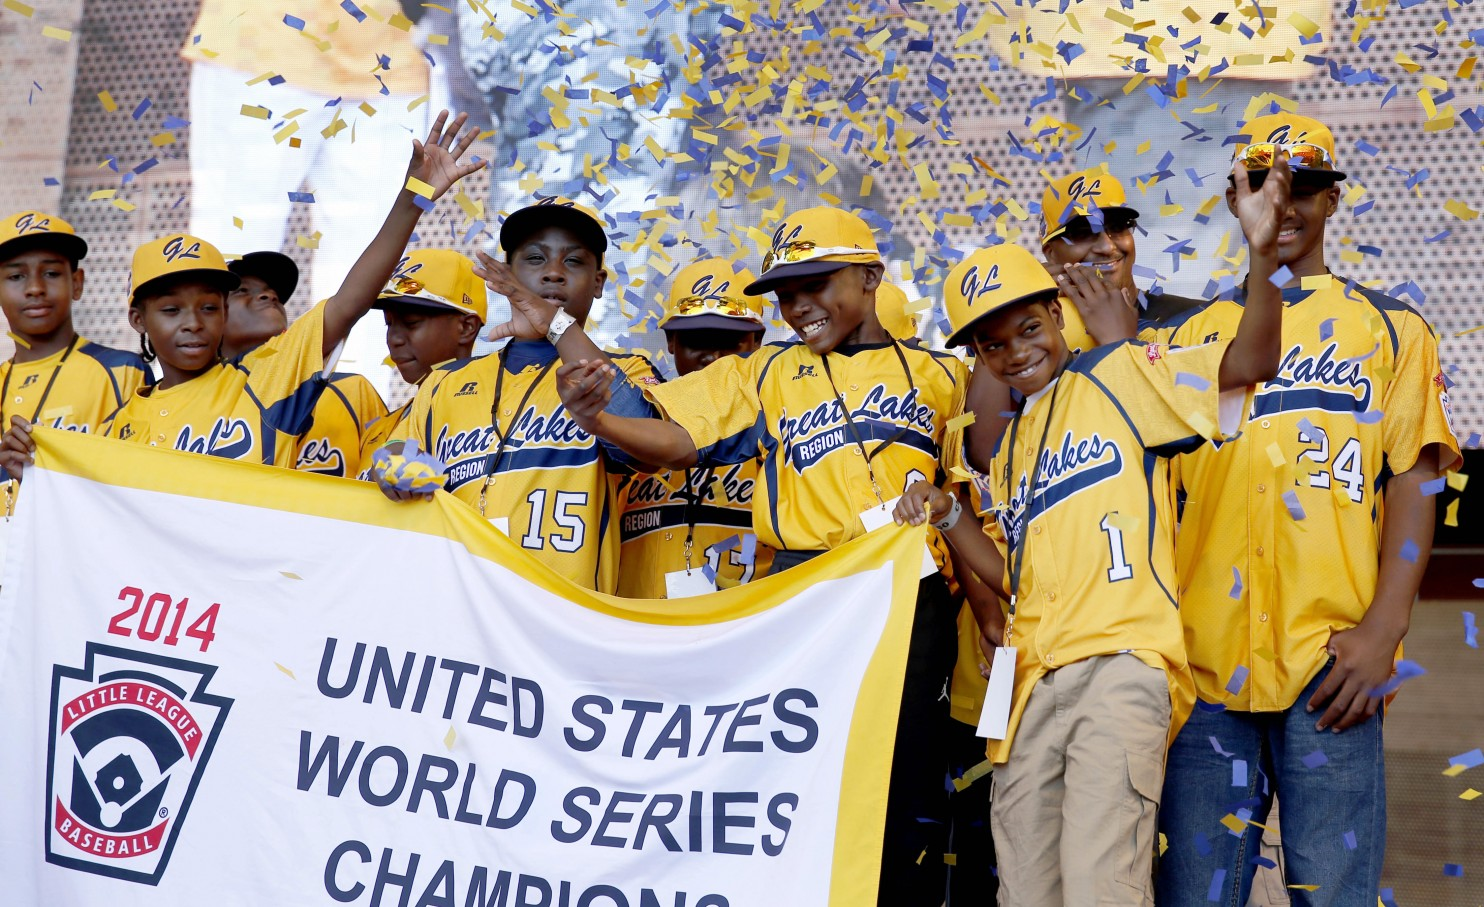 Backlash as Chicago's Jackie Robinson West stripped of U.S. title